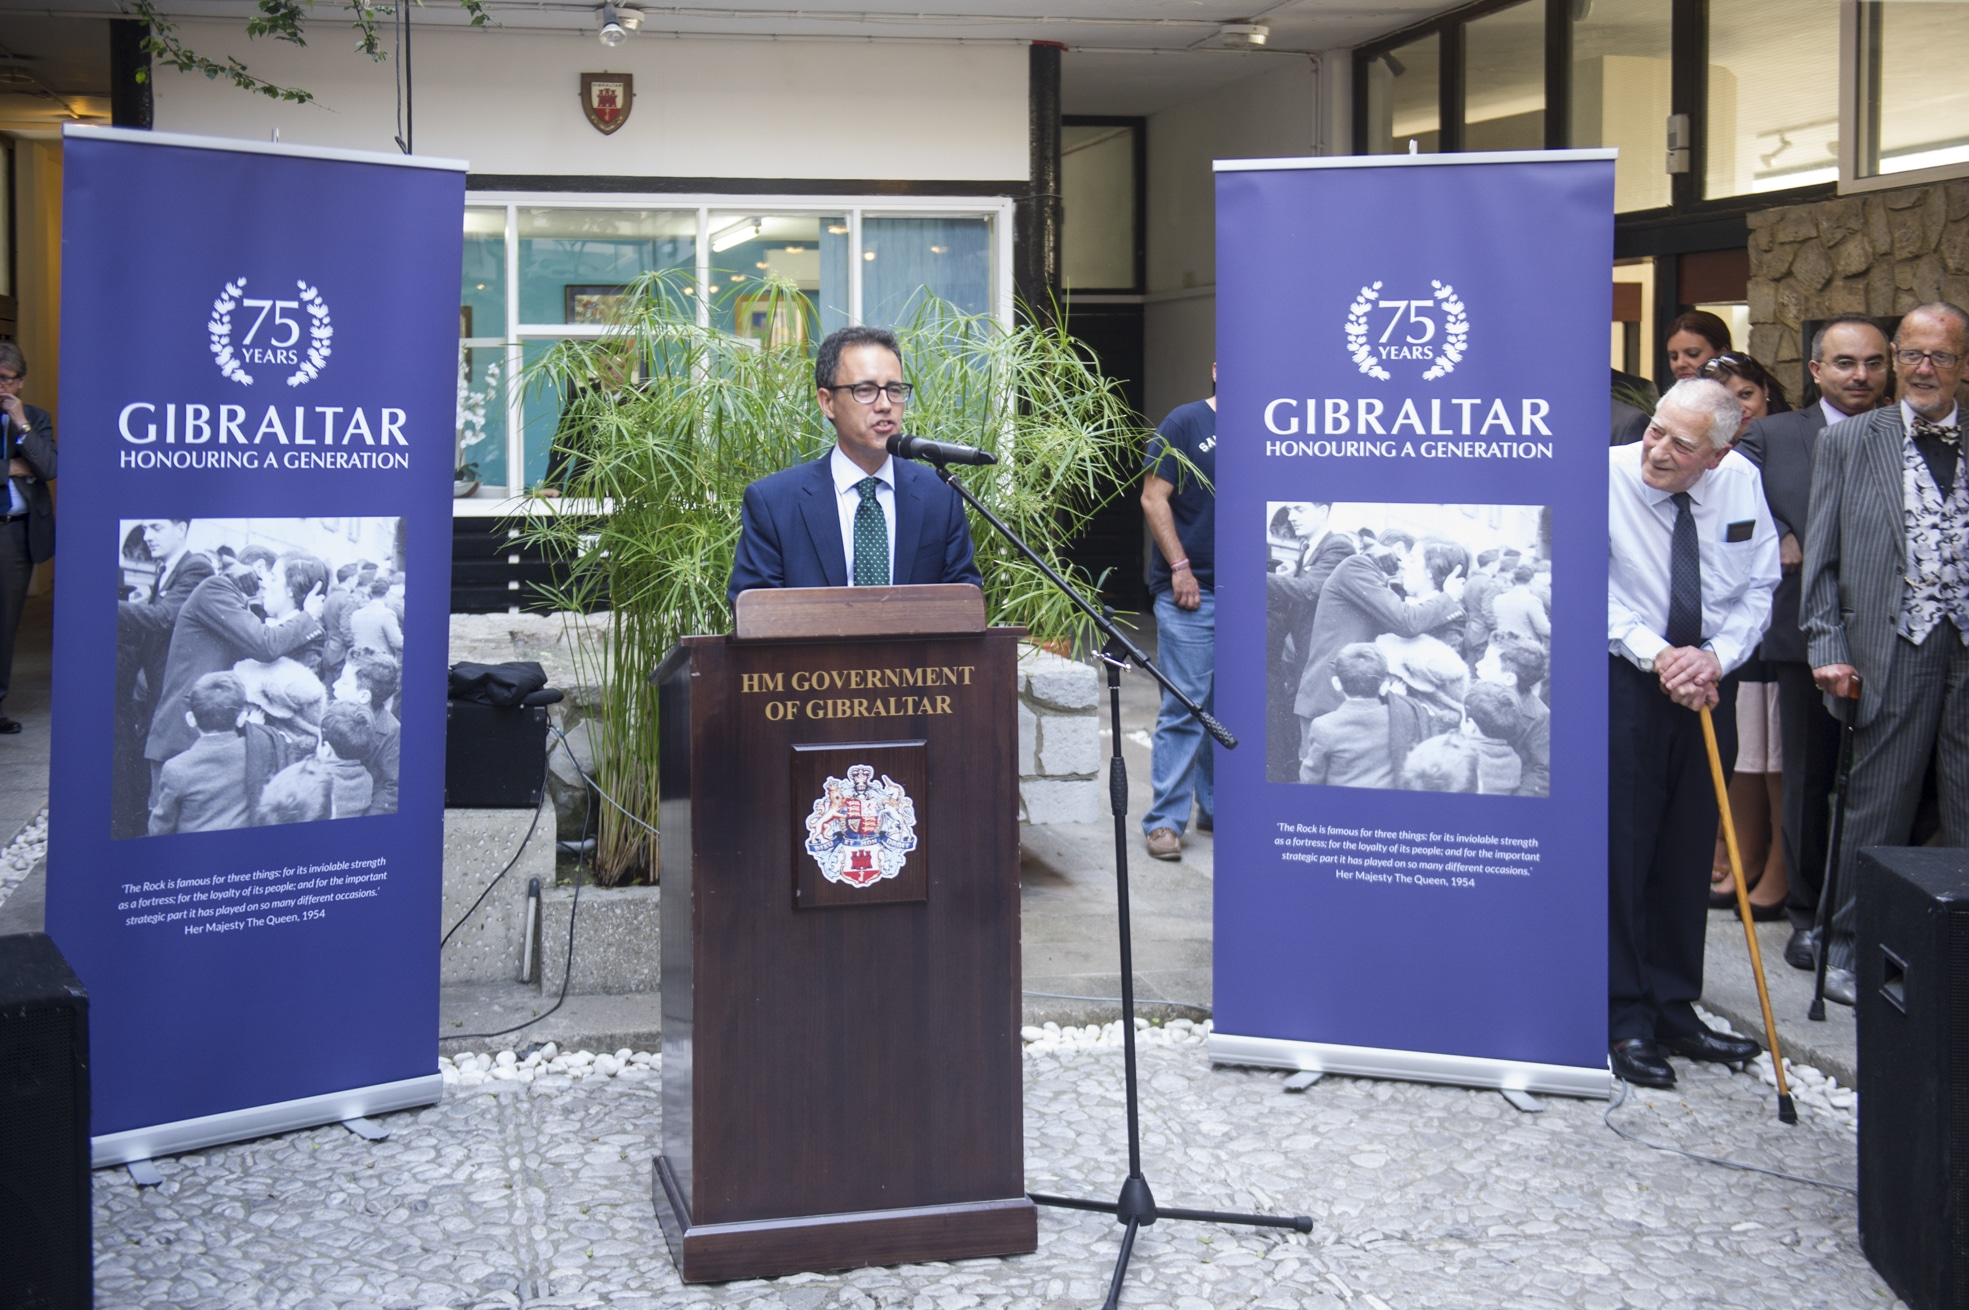 75-years-gibraltar-honouring-generation-34_16940385243_o